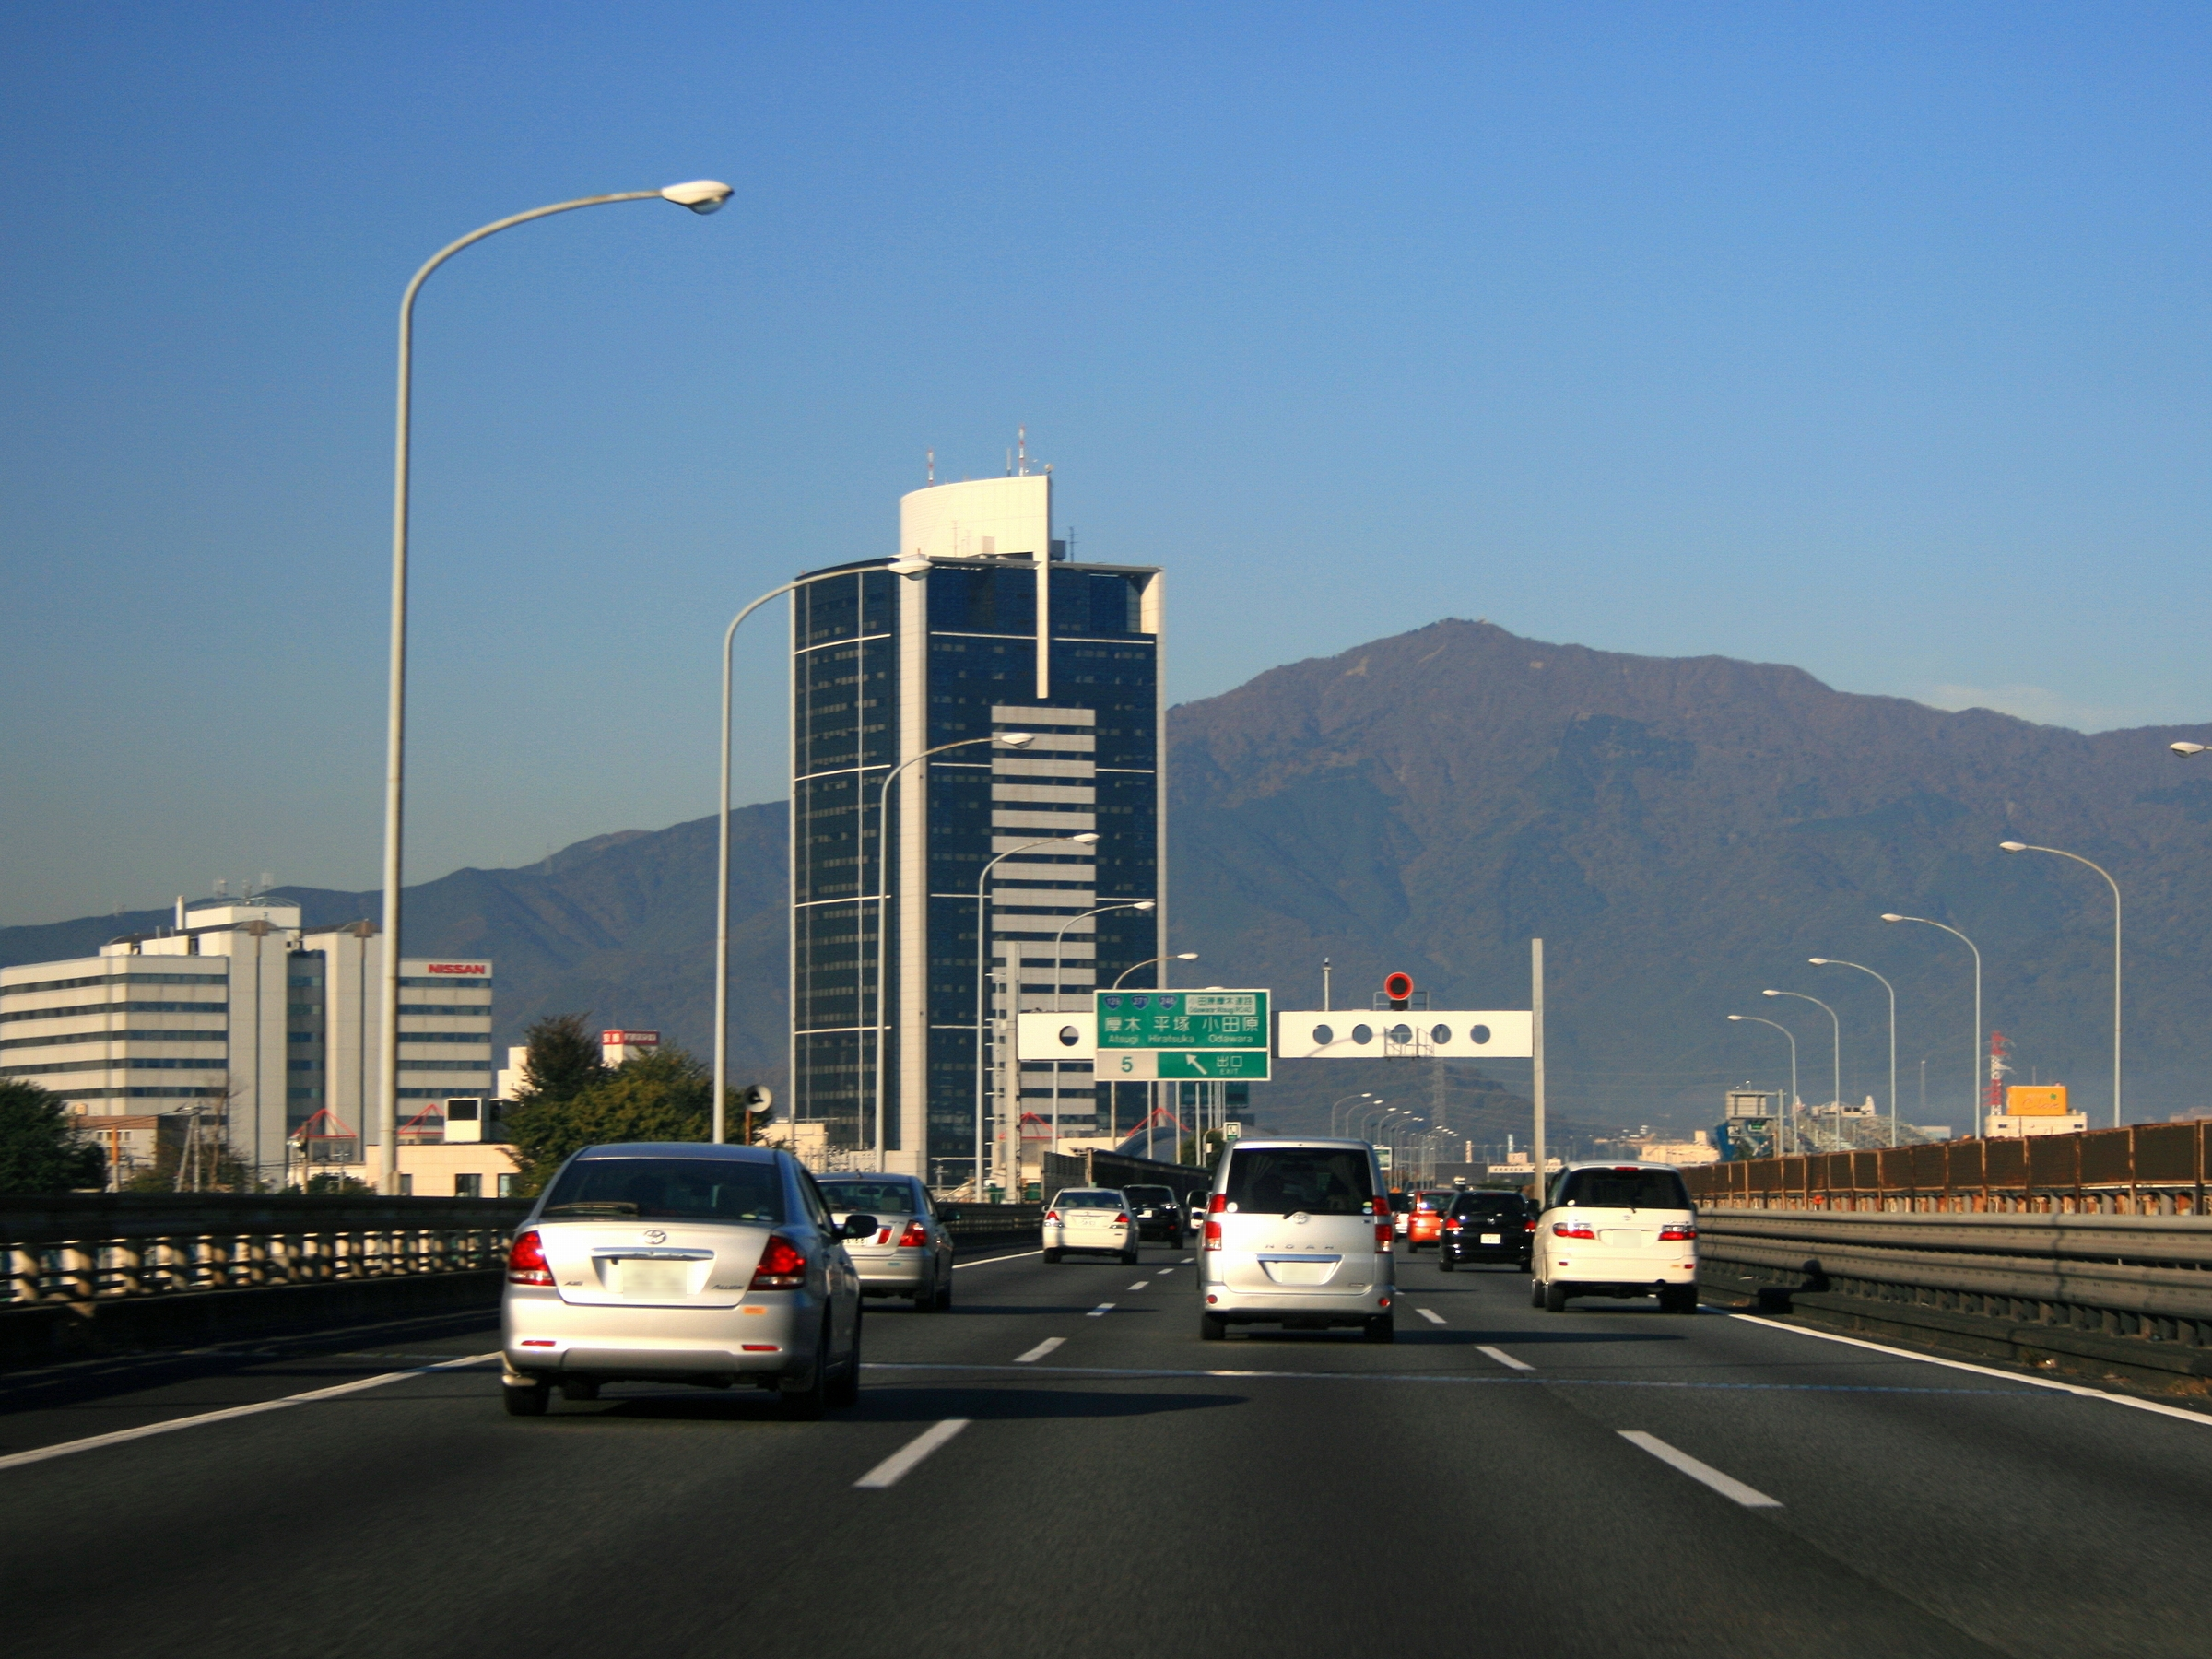 https://upload.wikimedia.org/wikipedia/commons/0/0c/Tomei-Expwy_Atsugi.jpg